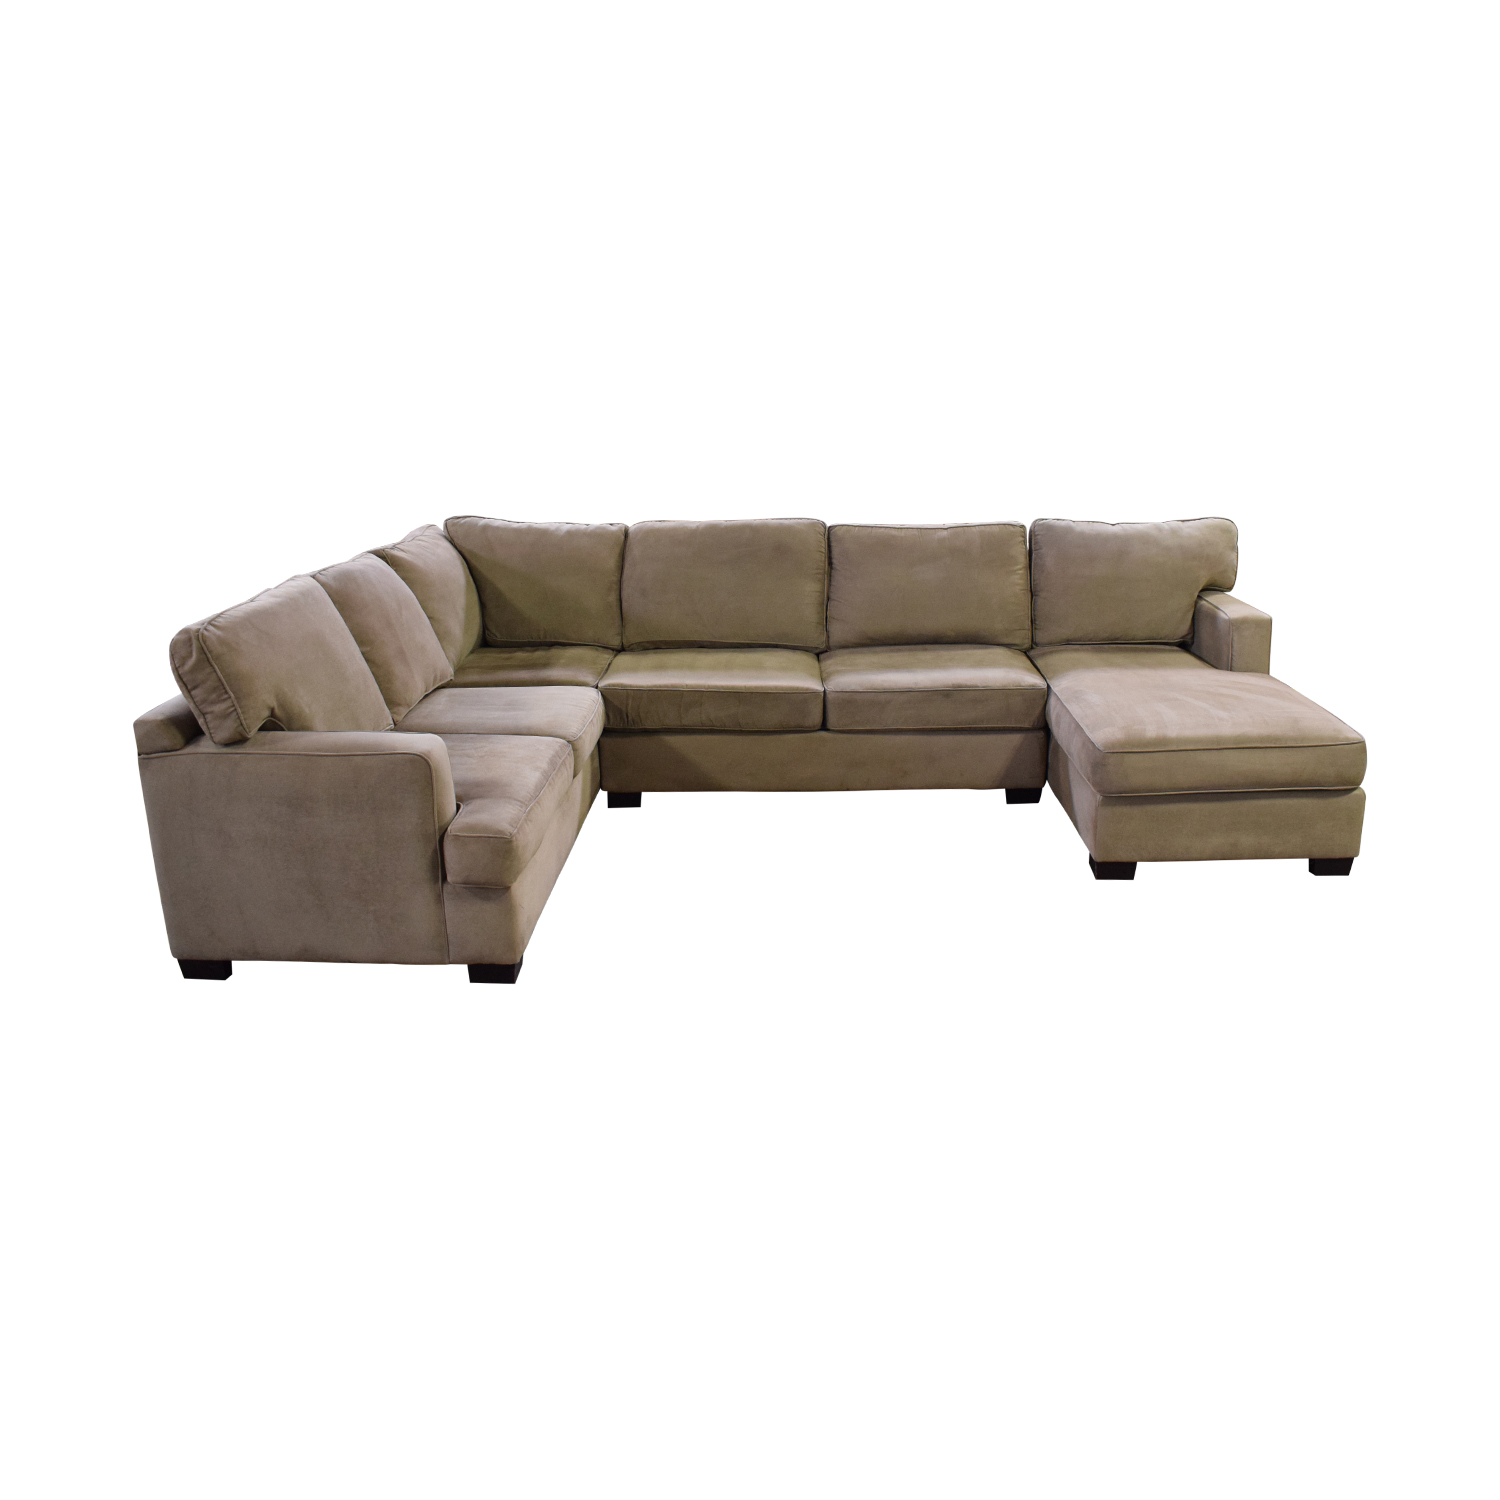 68 Off Bloomingdale S Sectional Sofa With Chaise Sofas